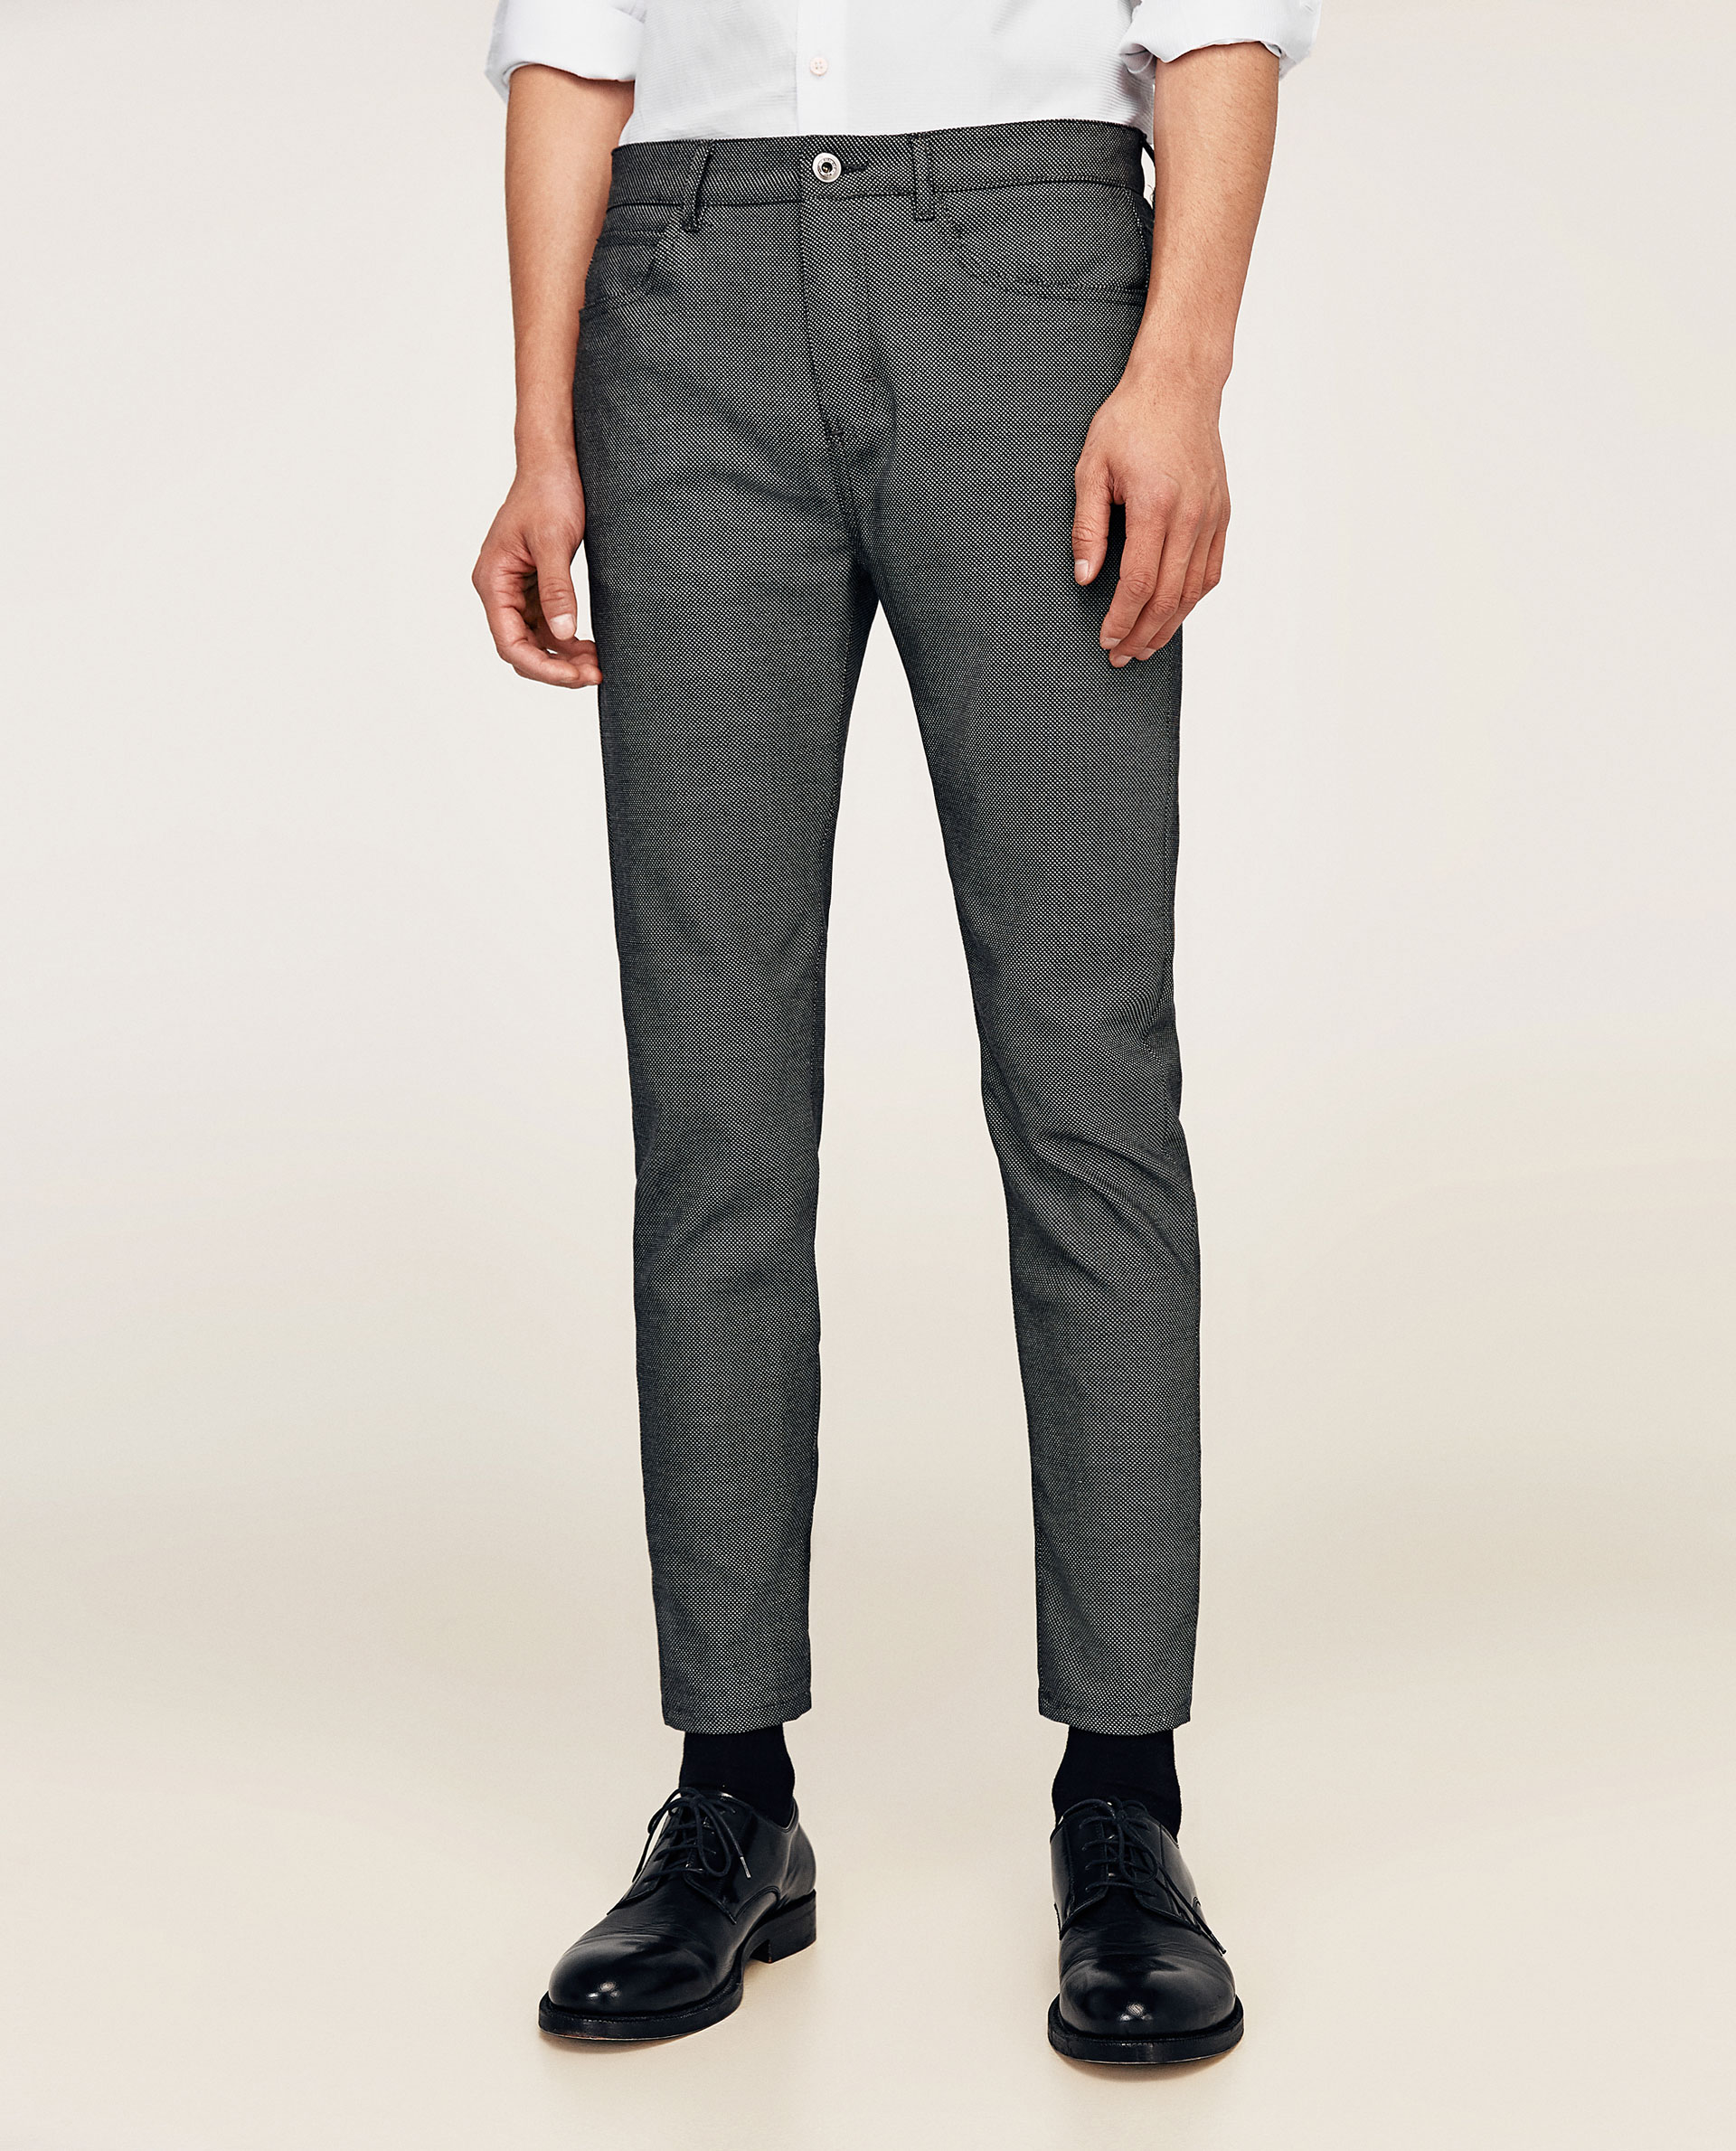 Trousers from Zara